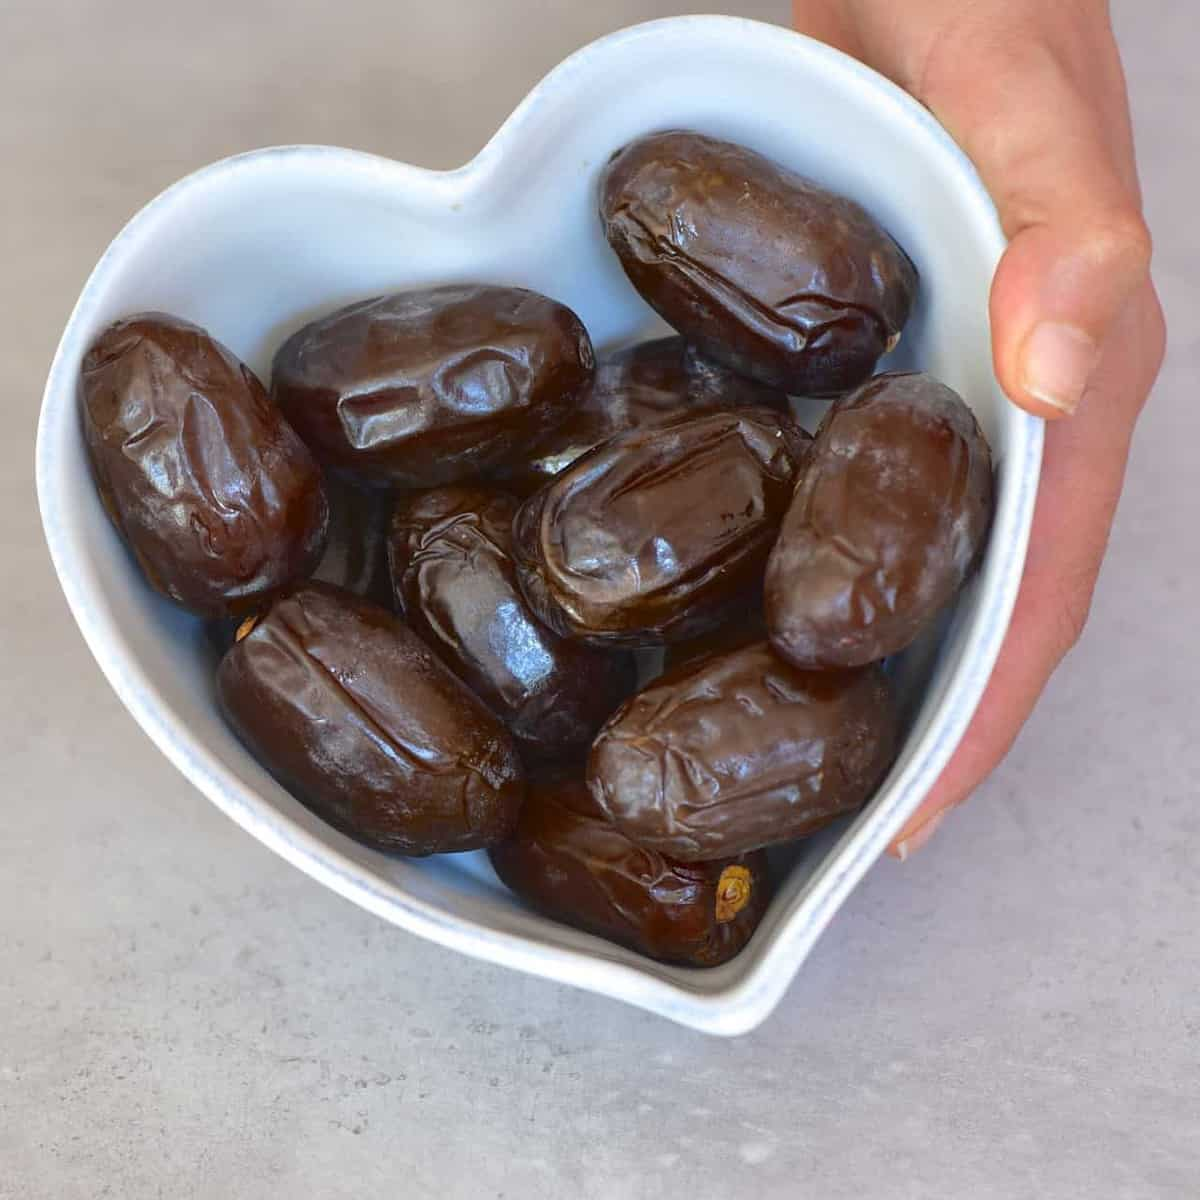 dates inside a heart shaped bowl